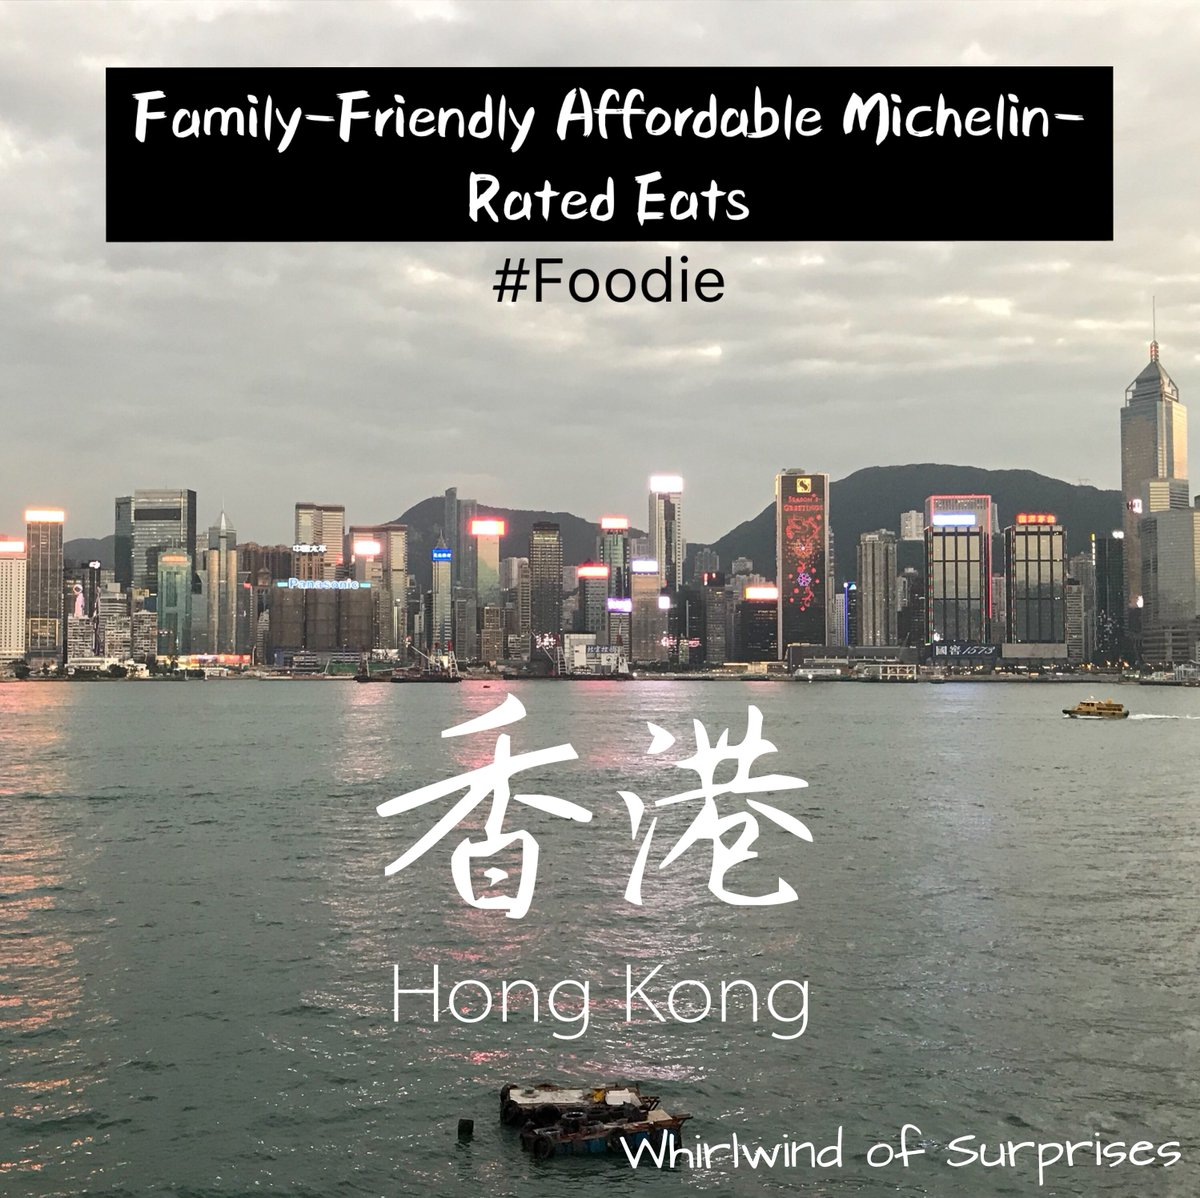 Family friendly Michelin eats in Hong Kong